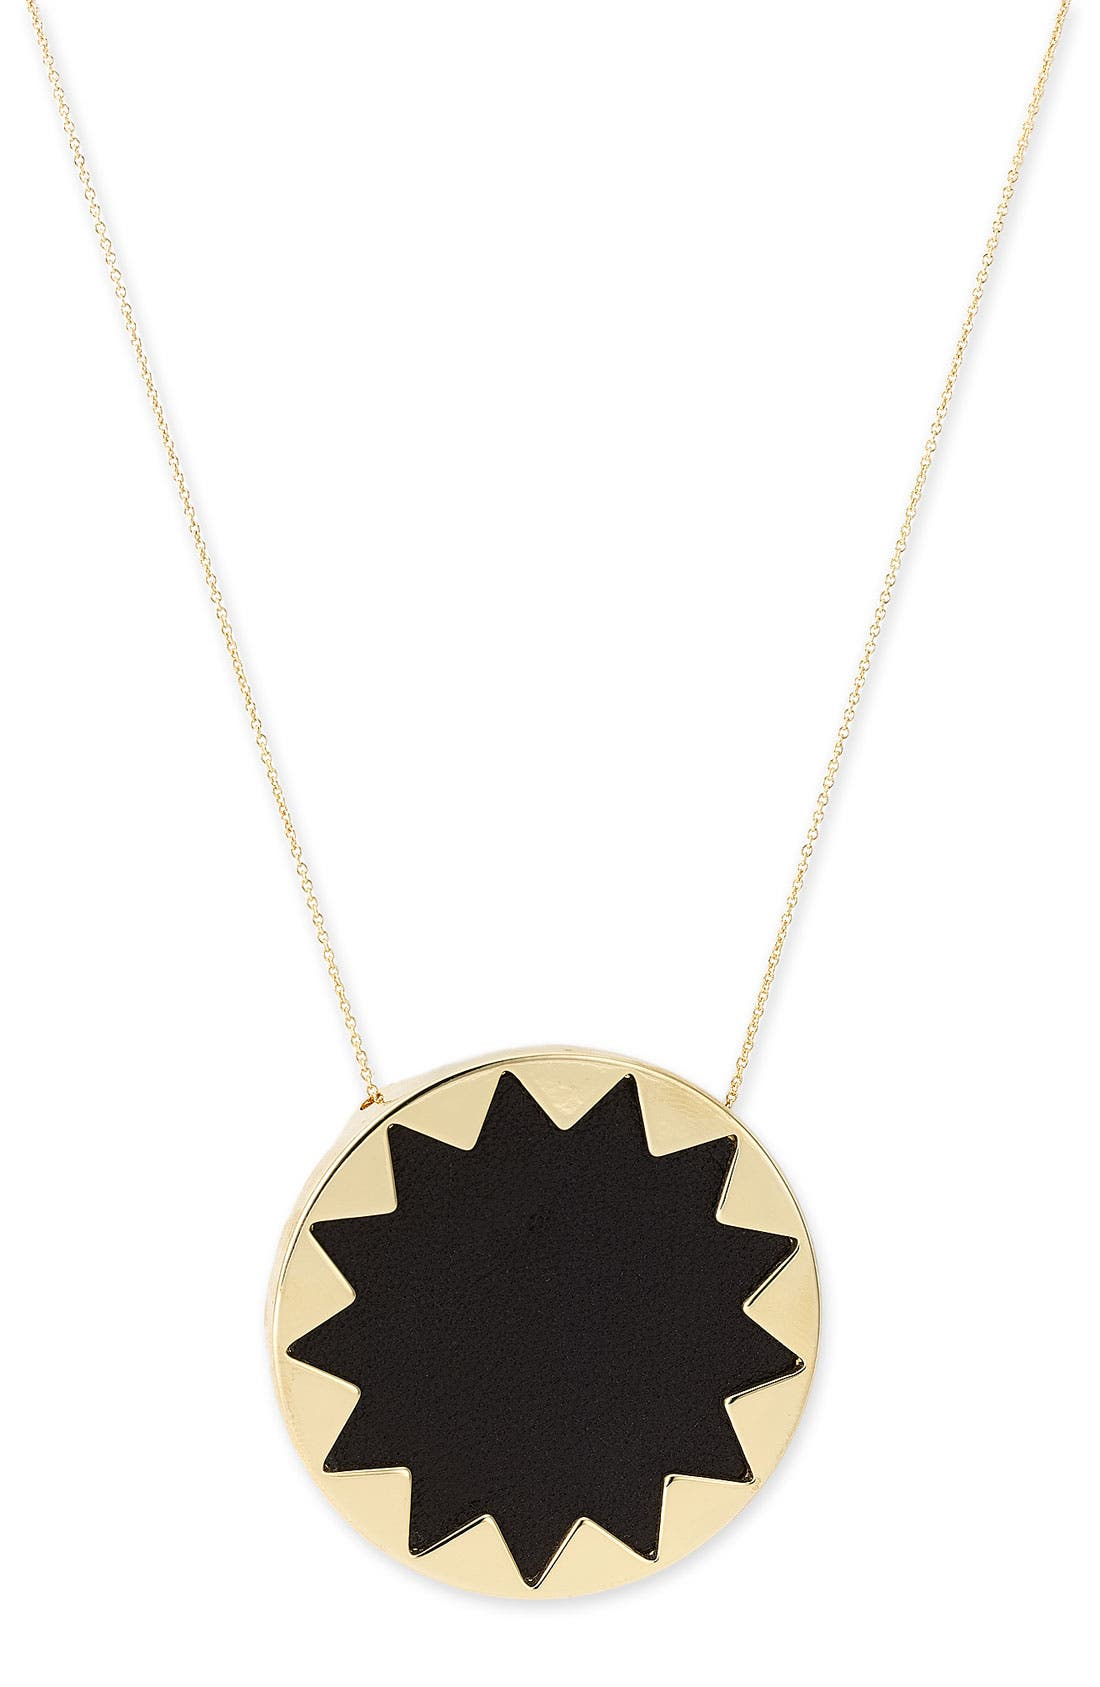 Alternate Image 1 Selected - House of Harlow 1960 Sunburst Pendant Necklace